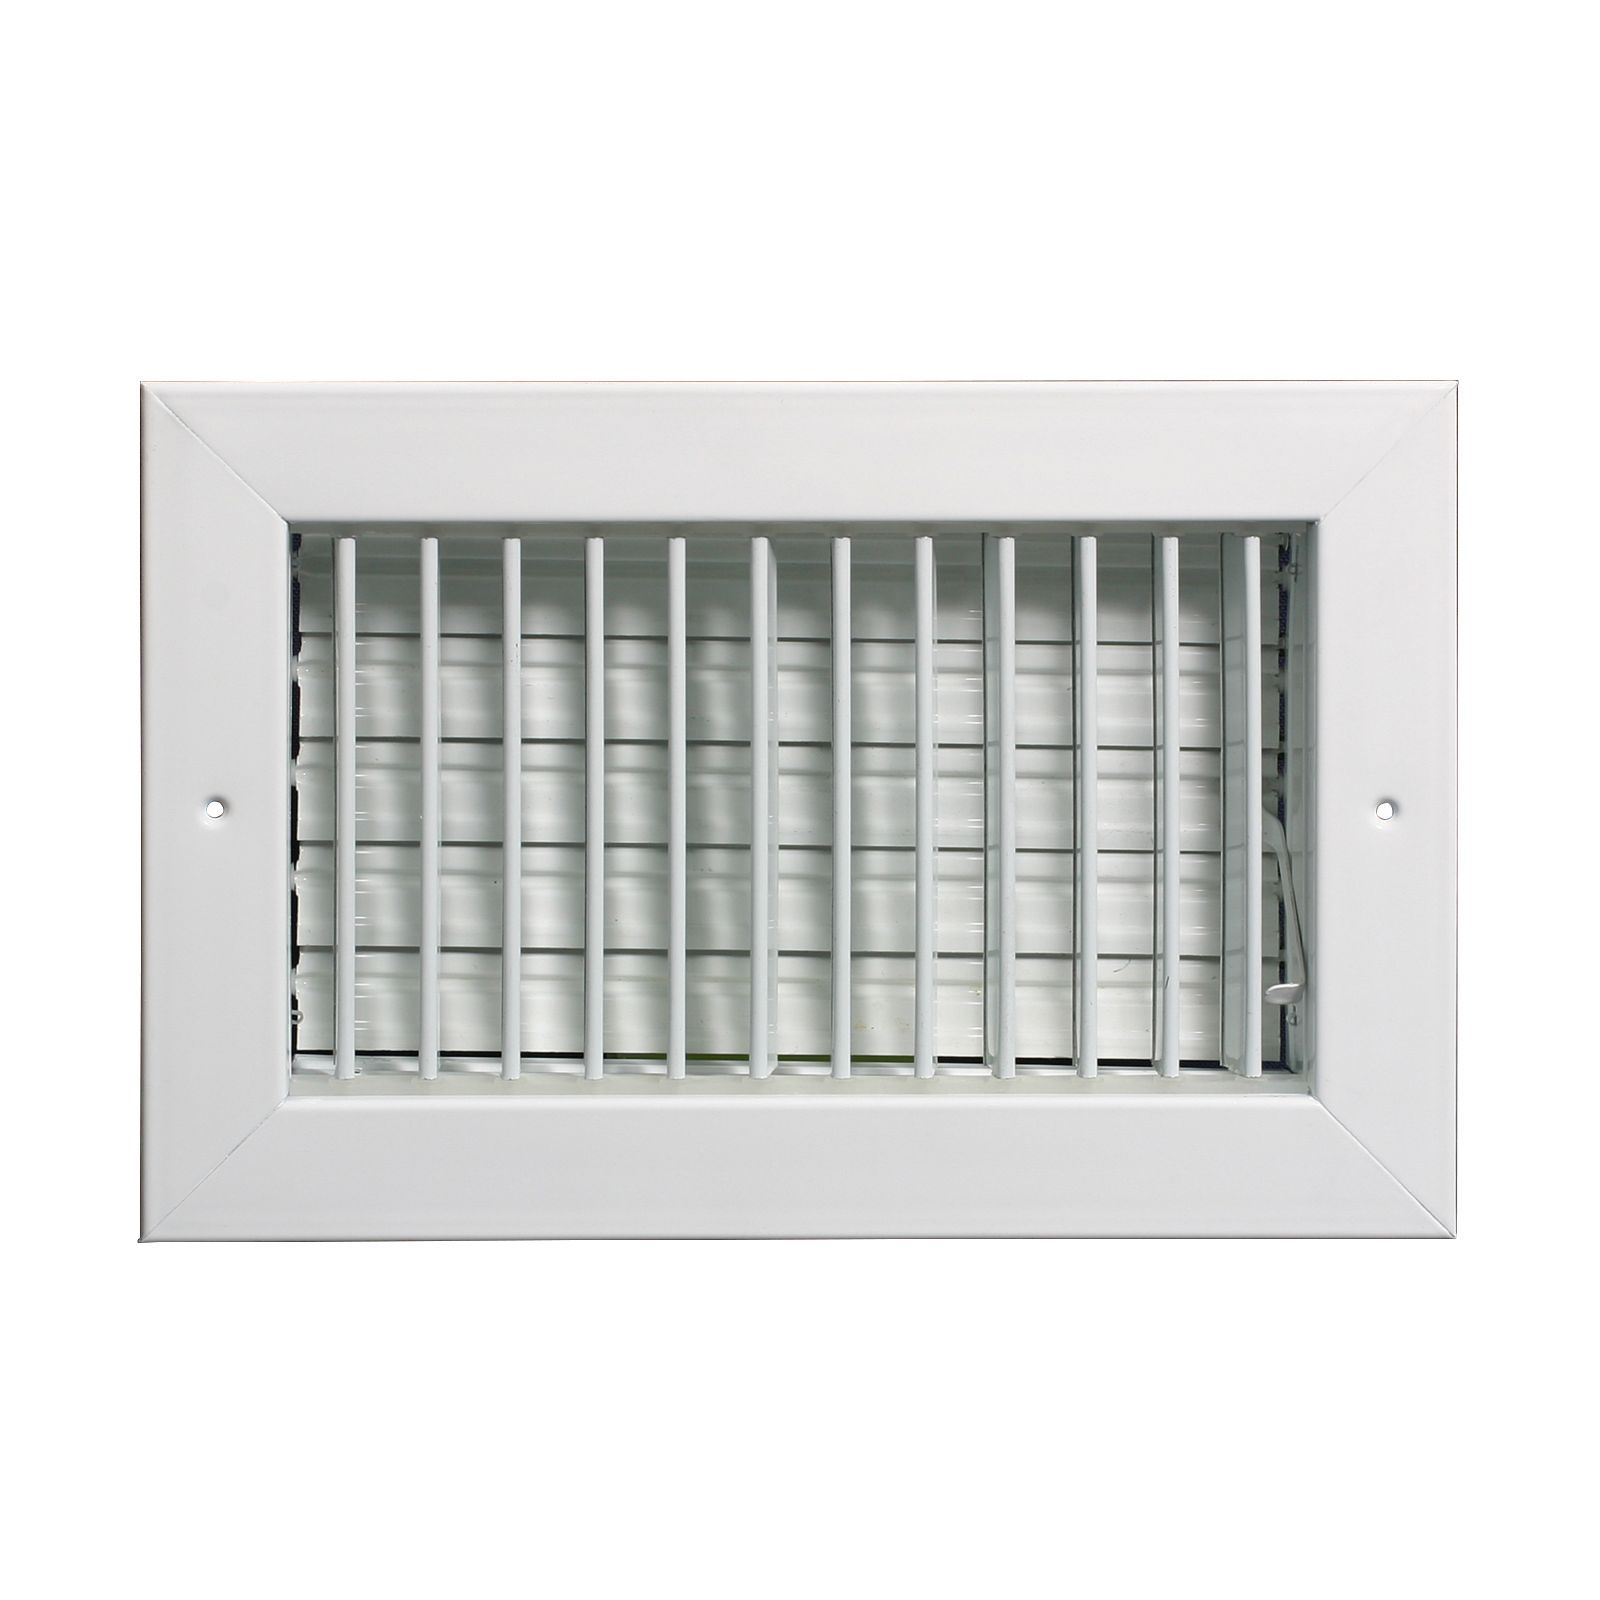 "Grille Tech VM0806 - Aluminum Vertical Blade Sidewall Register, Multi-Shutter Damper 8"" X 6"" White"